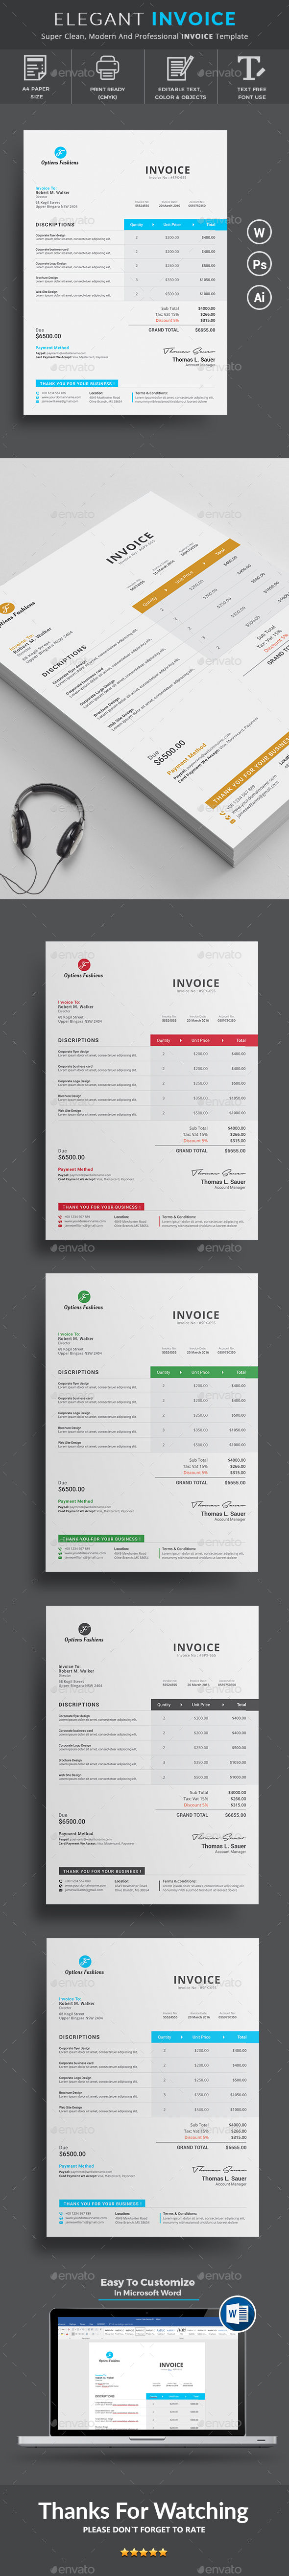 Paypal Invoice Scam Word Business Proposal  Invoice Templates From Graphicriver Soho Invoice with Invoice Accounting Software  Sample Tax Invoice Template